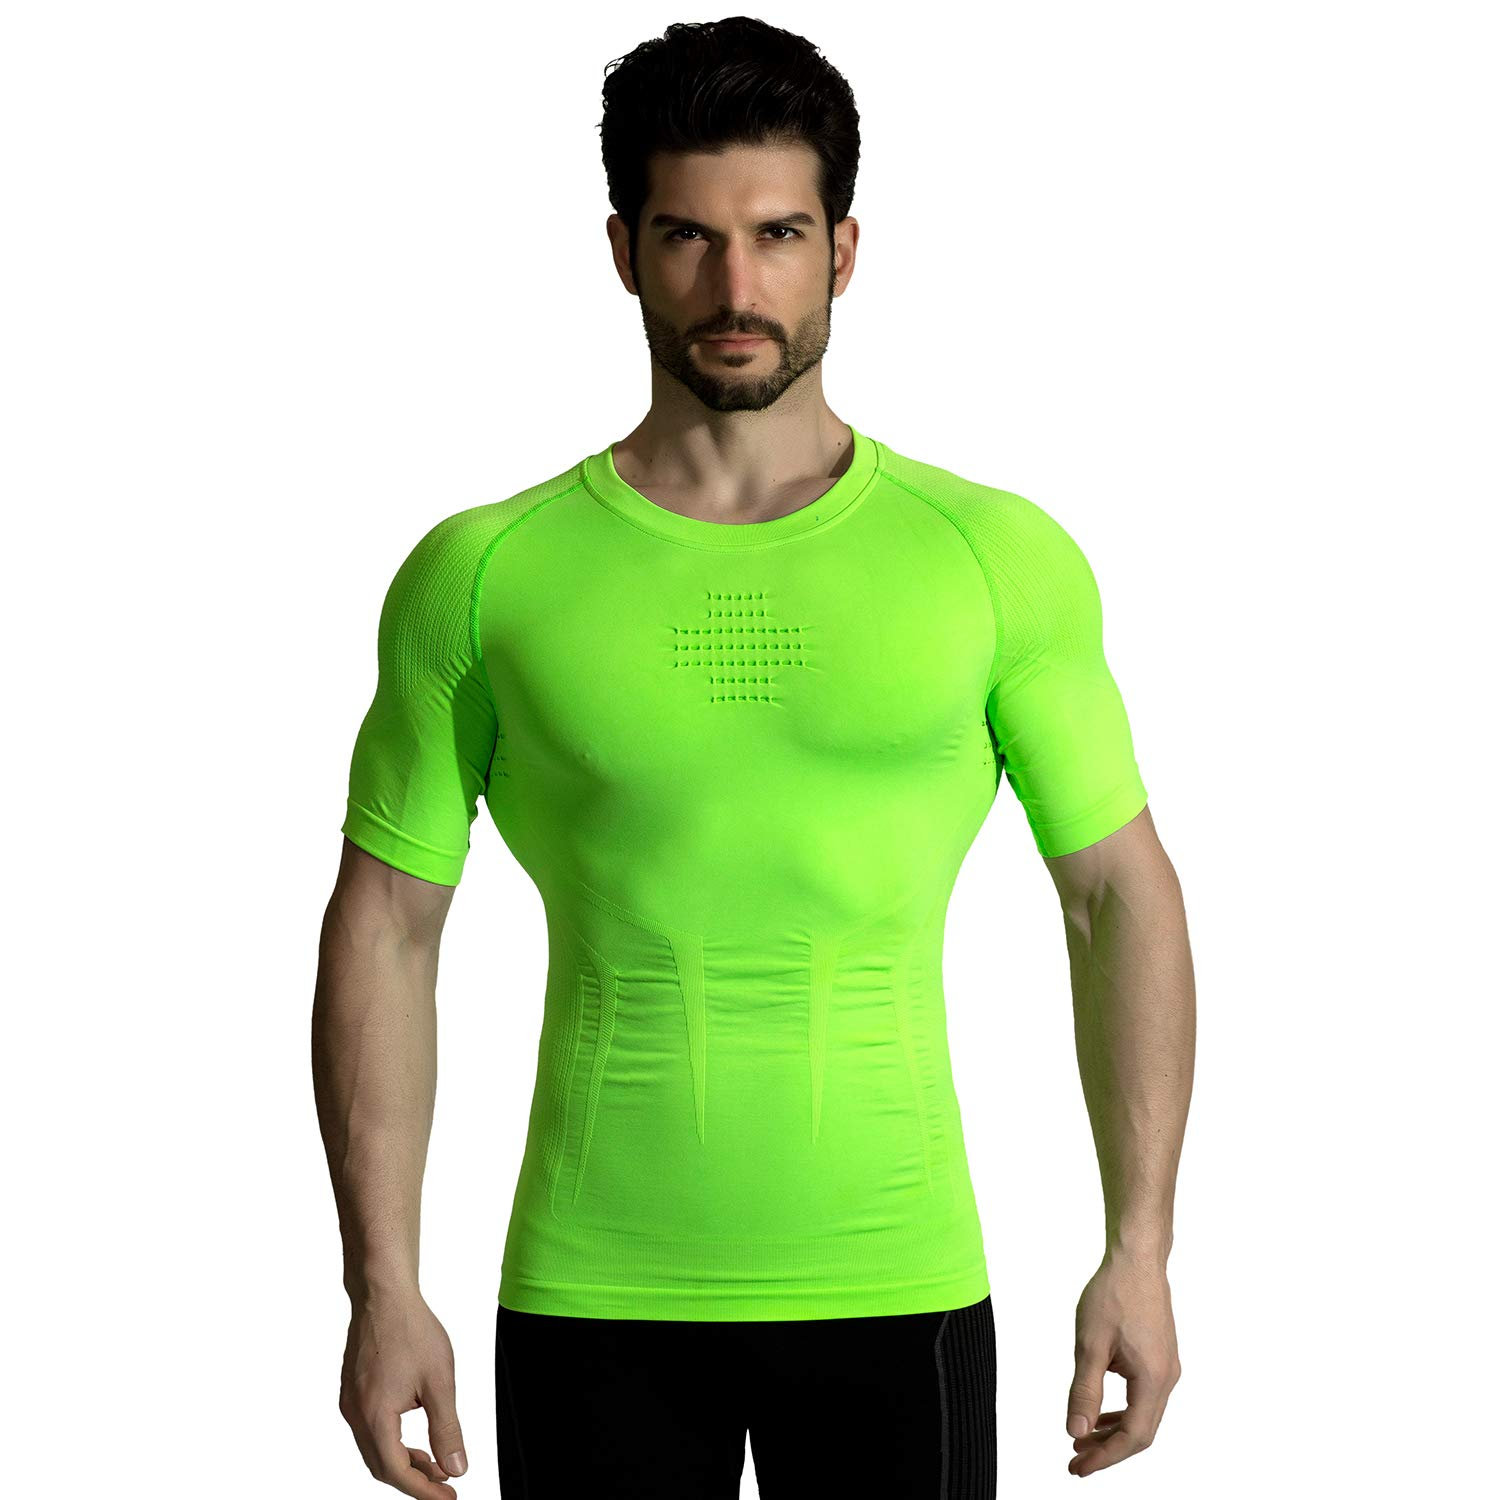 +MD Mens Cool Dry Compression Shirt Base Layer Top Short Sleeve T-Shirt Workout Athletic Slimming Shirt